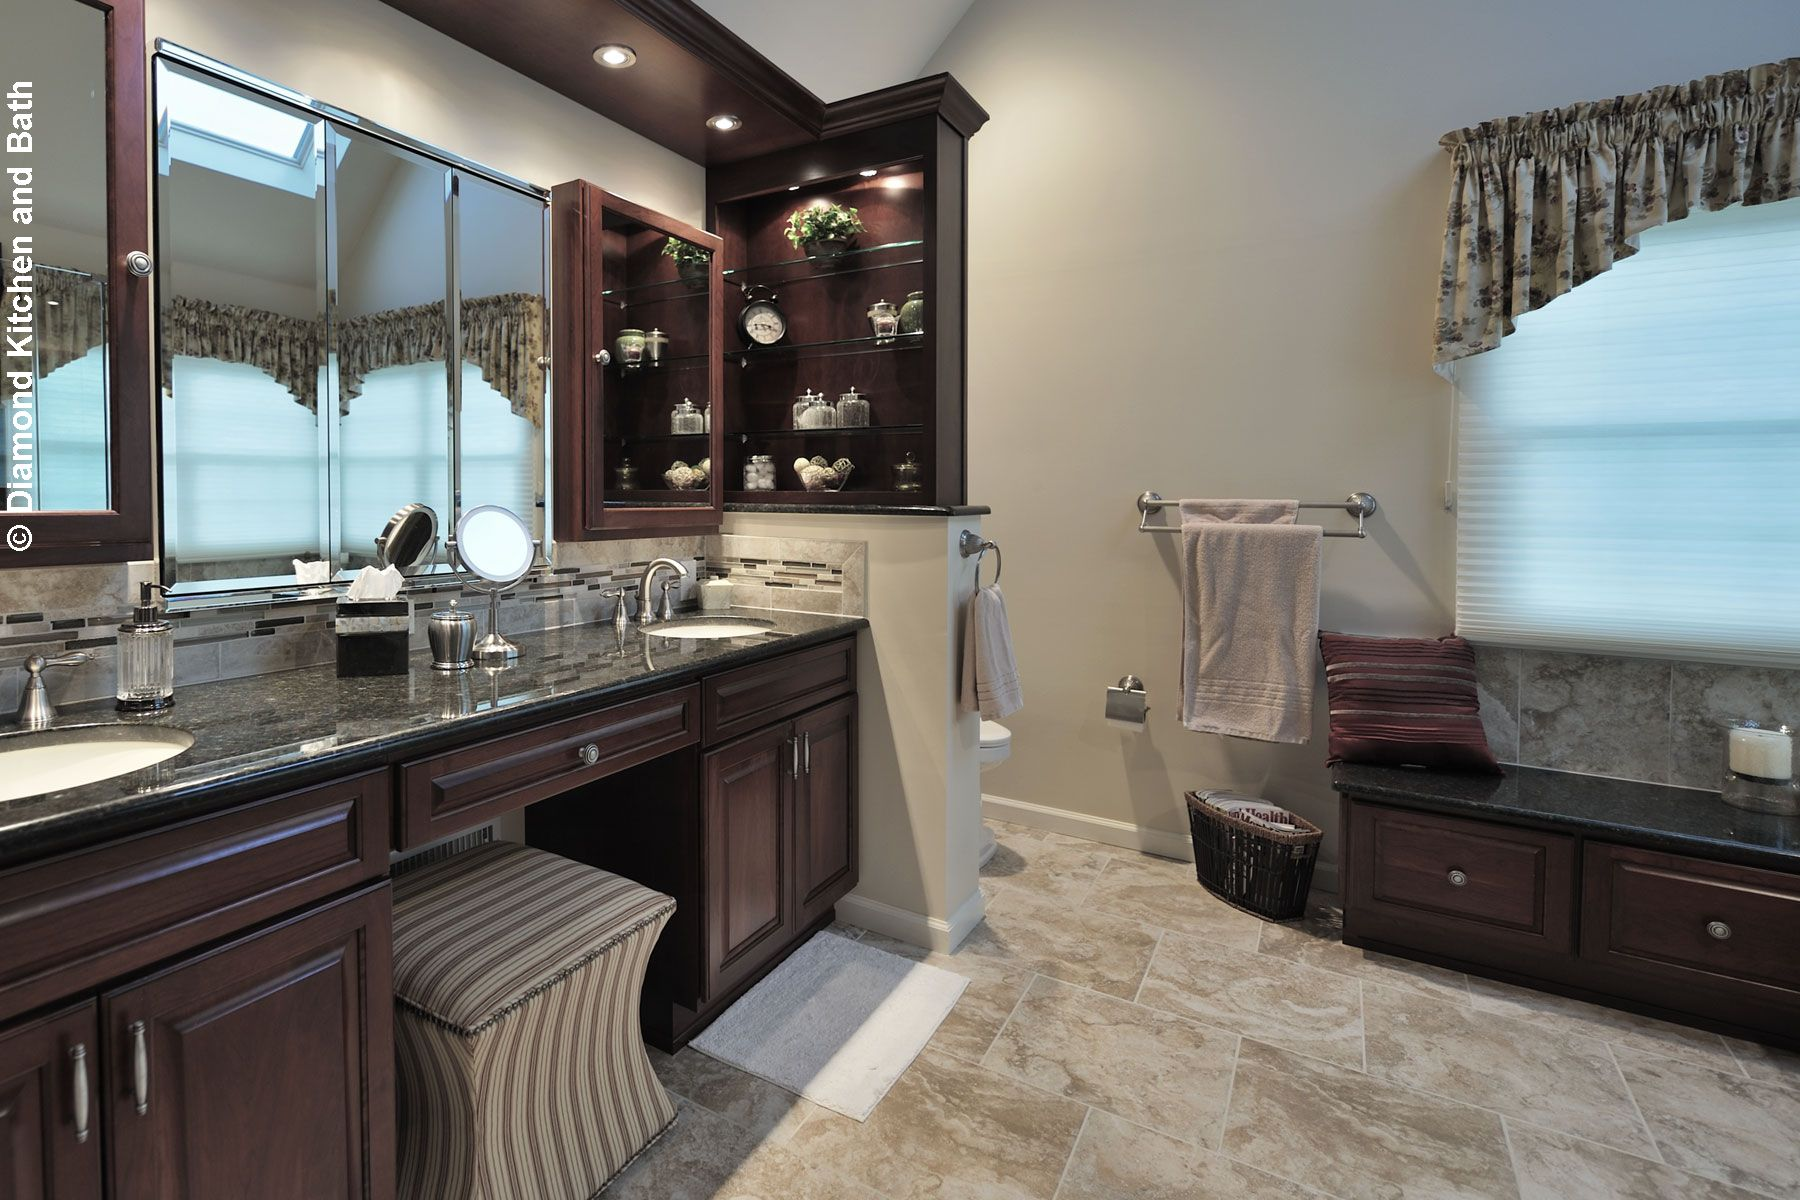 Bathroom Remodeling Virtual Tour in Doylestown, PA